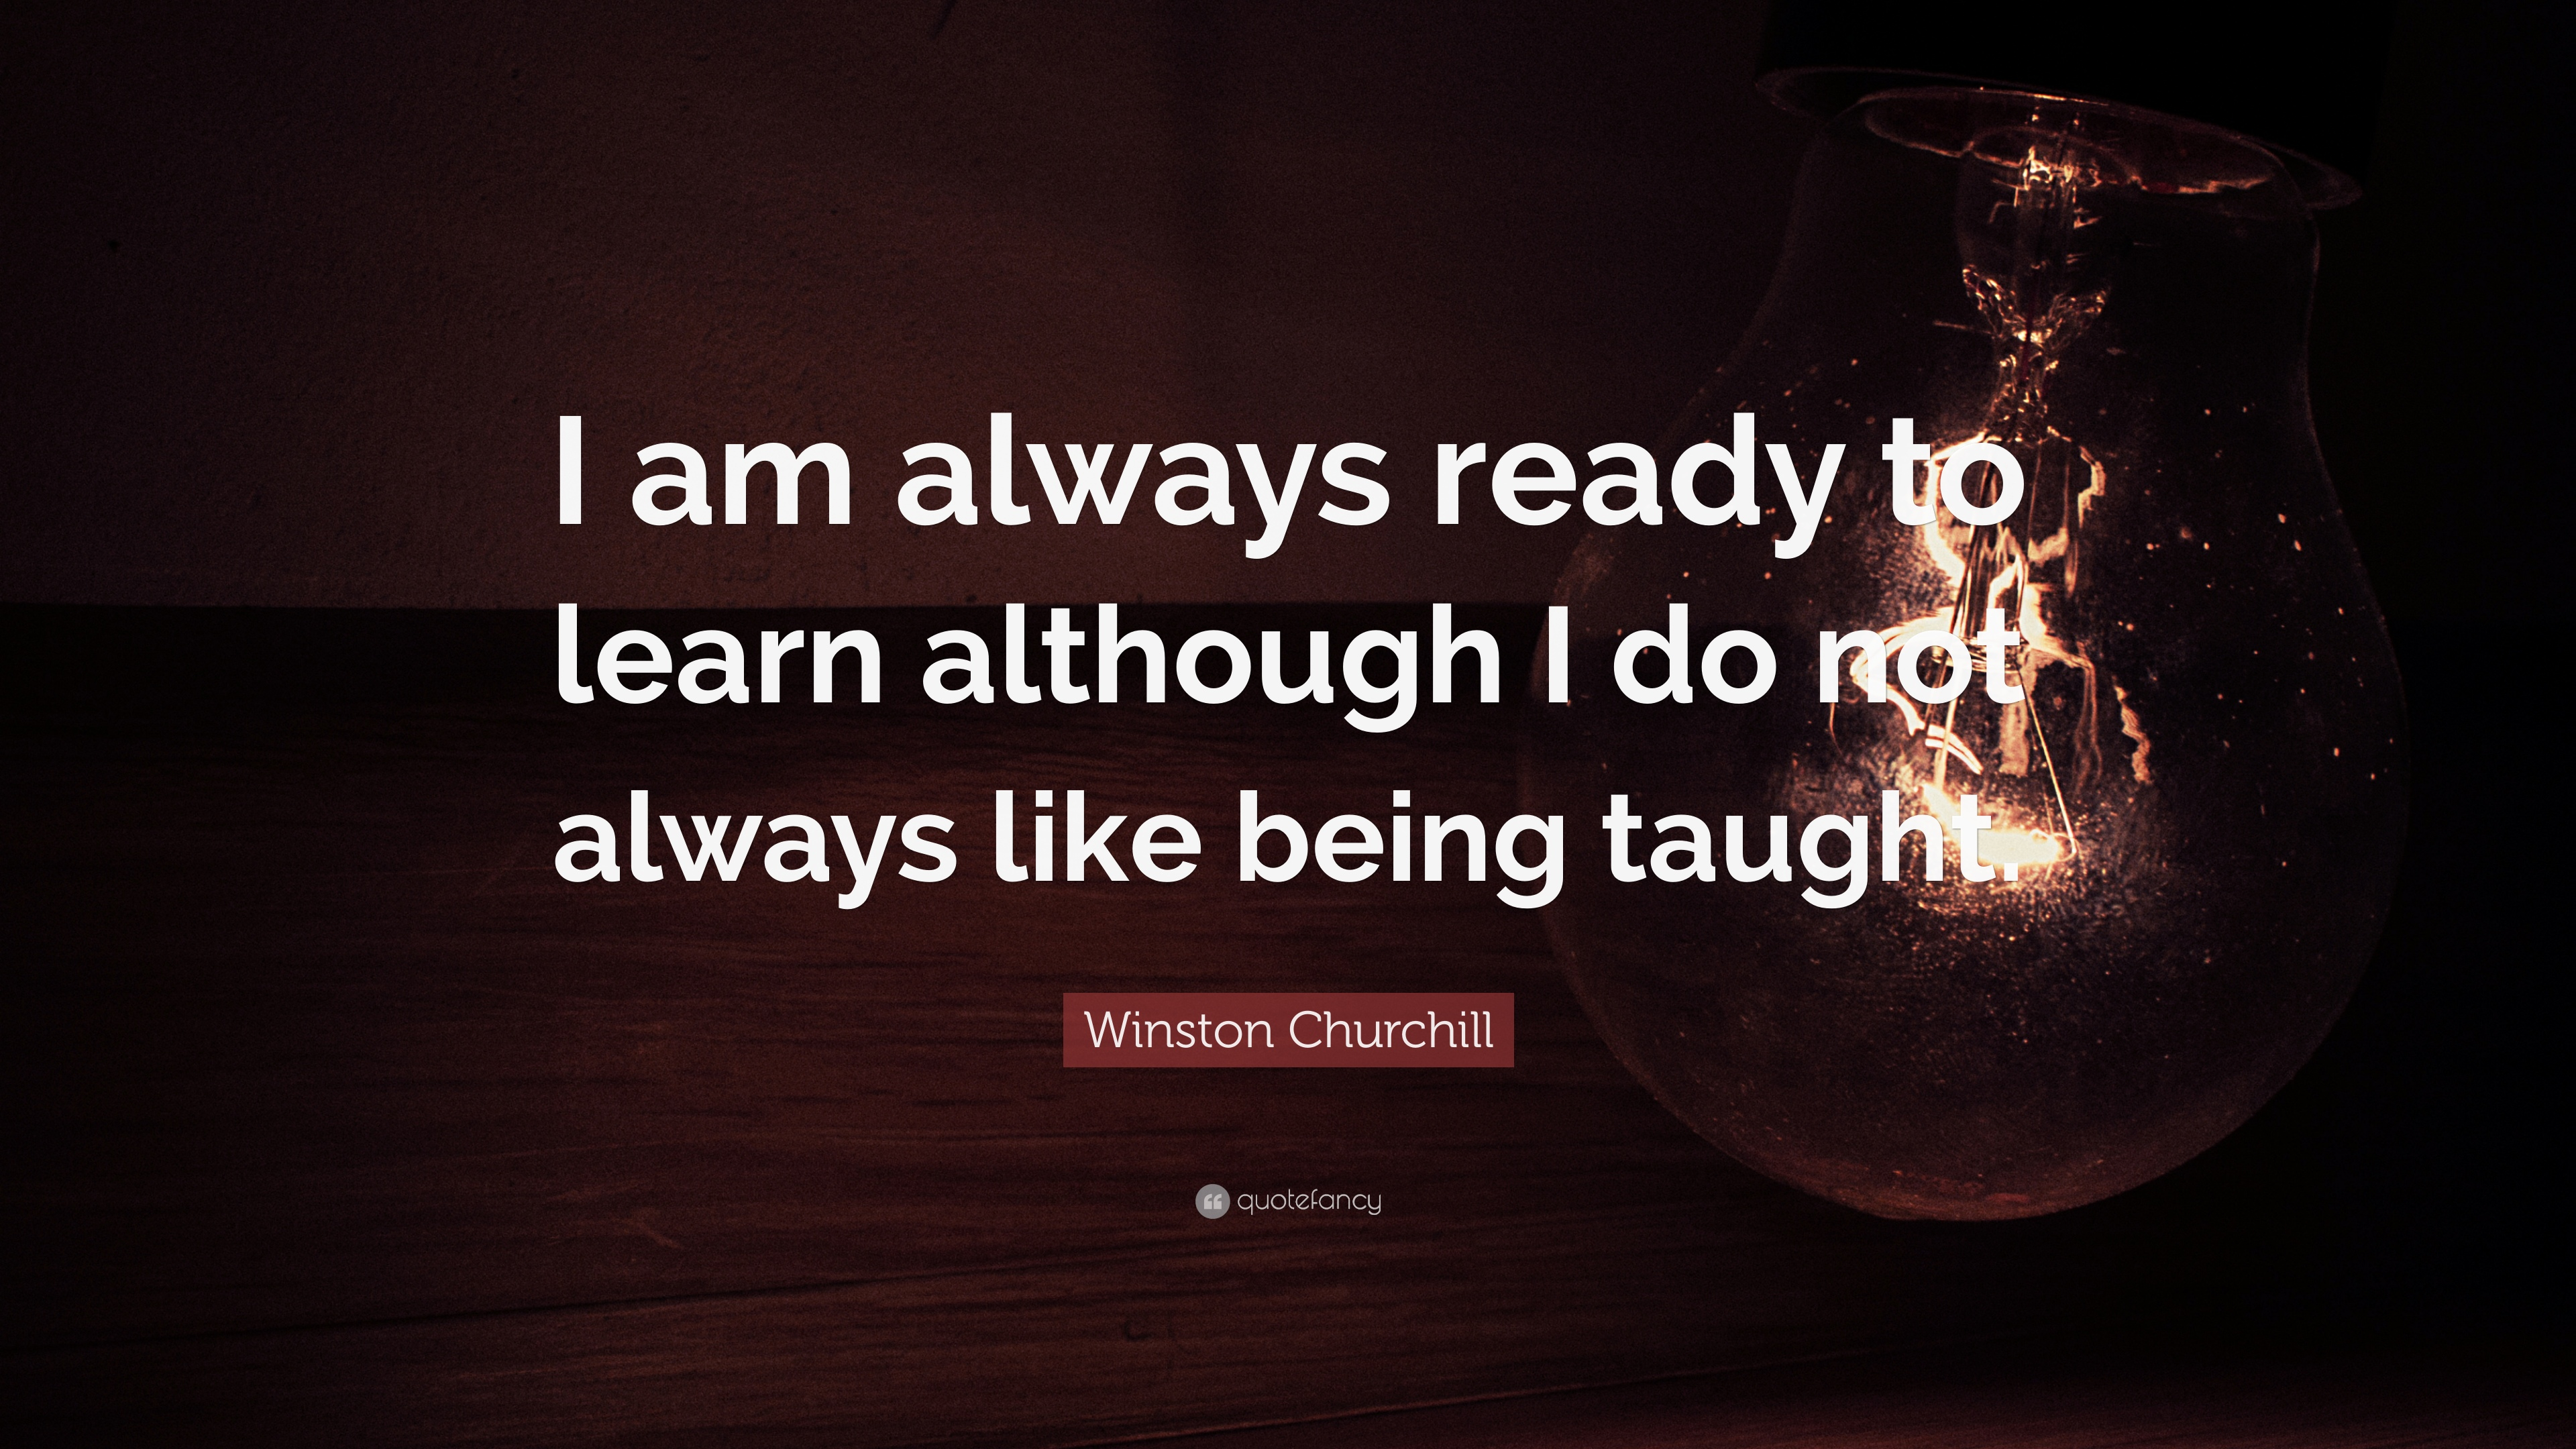 Inspiring quotes for English learners | Learn English | EF